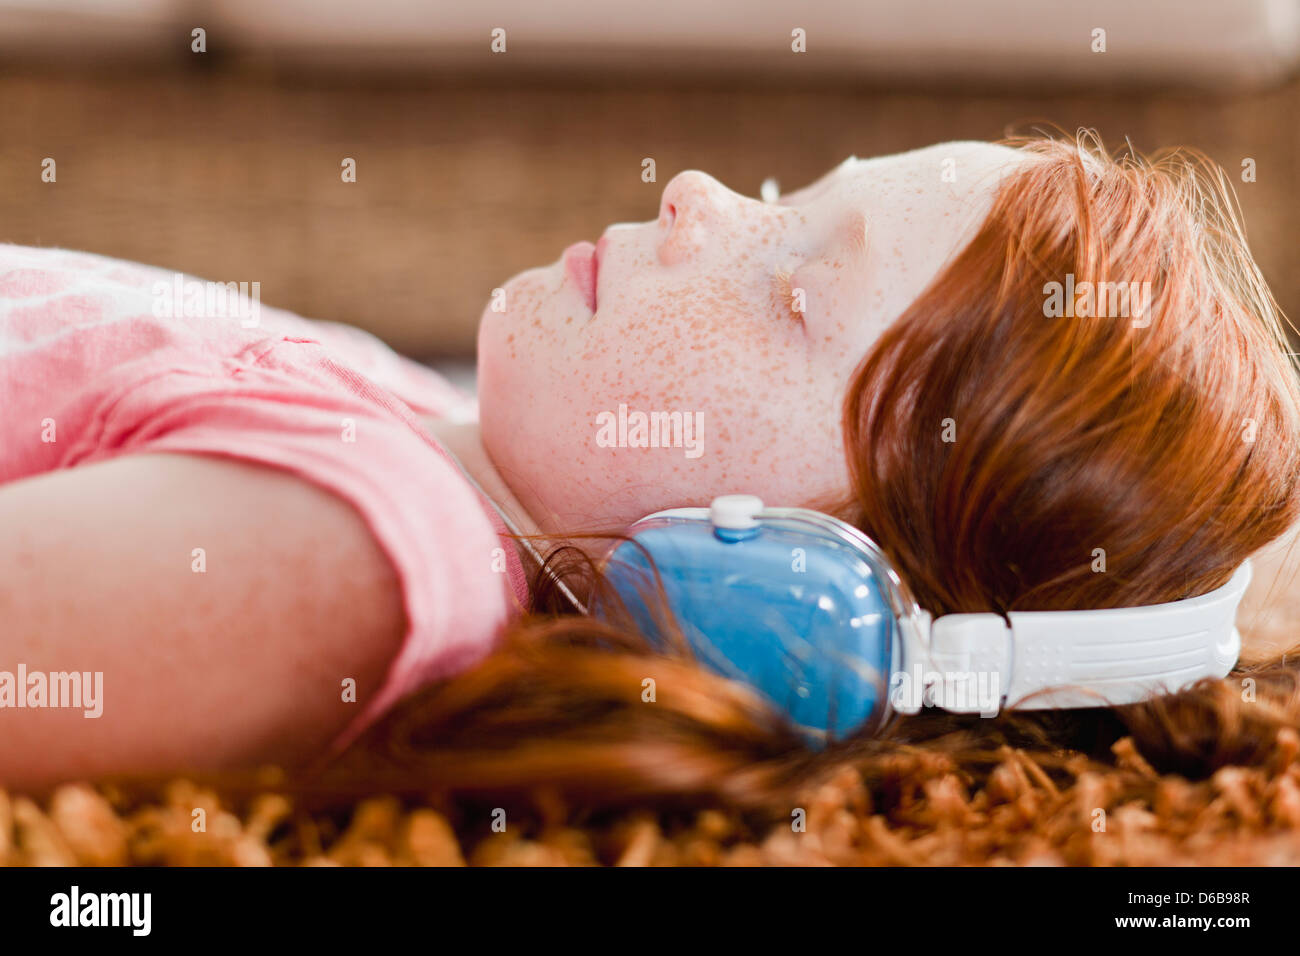 Girl listening to headphones on carpet Photo Stock